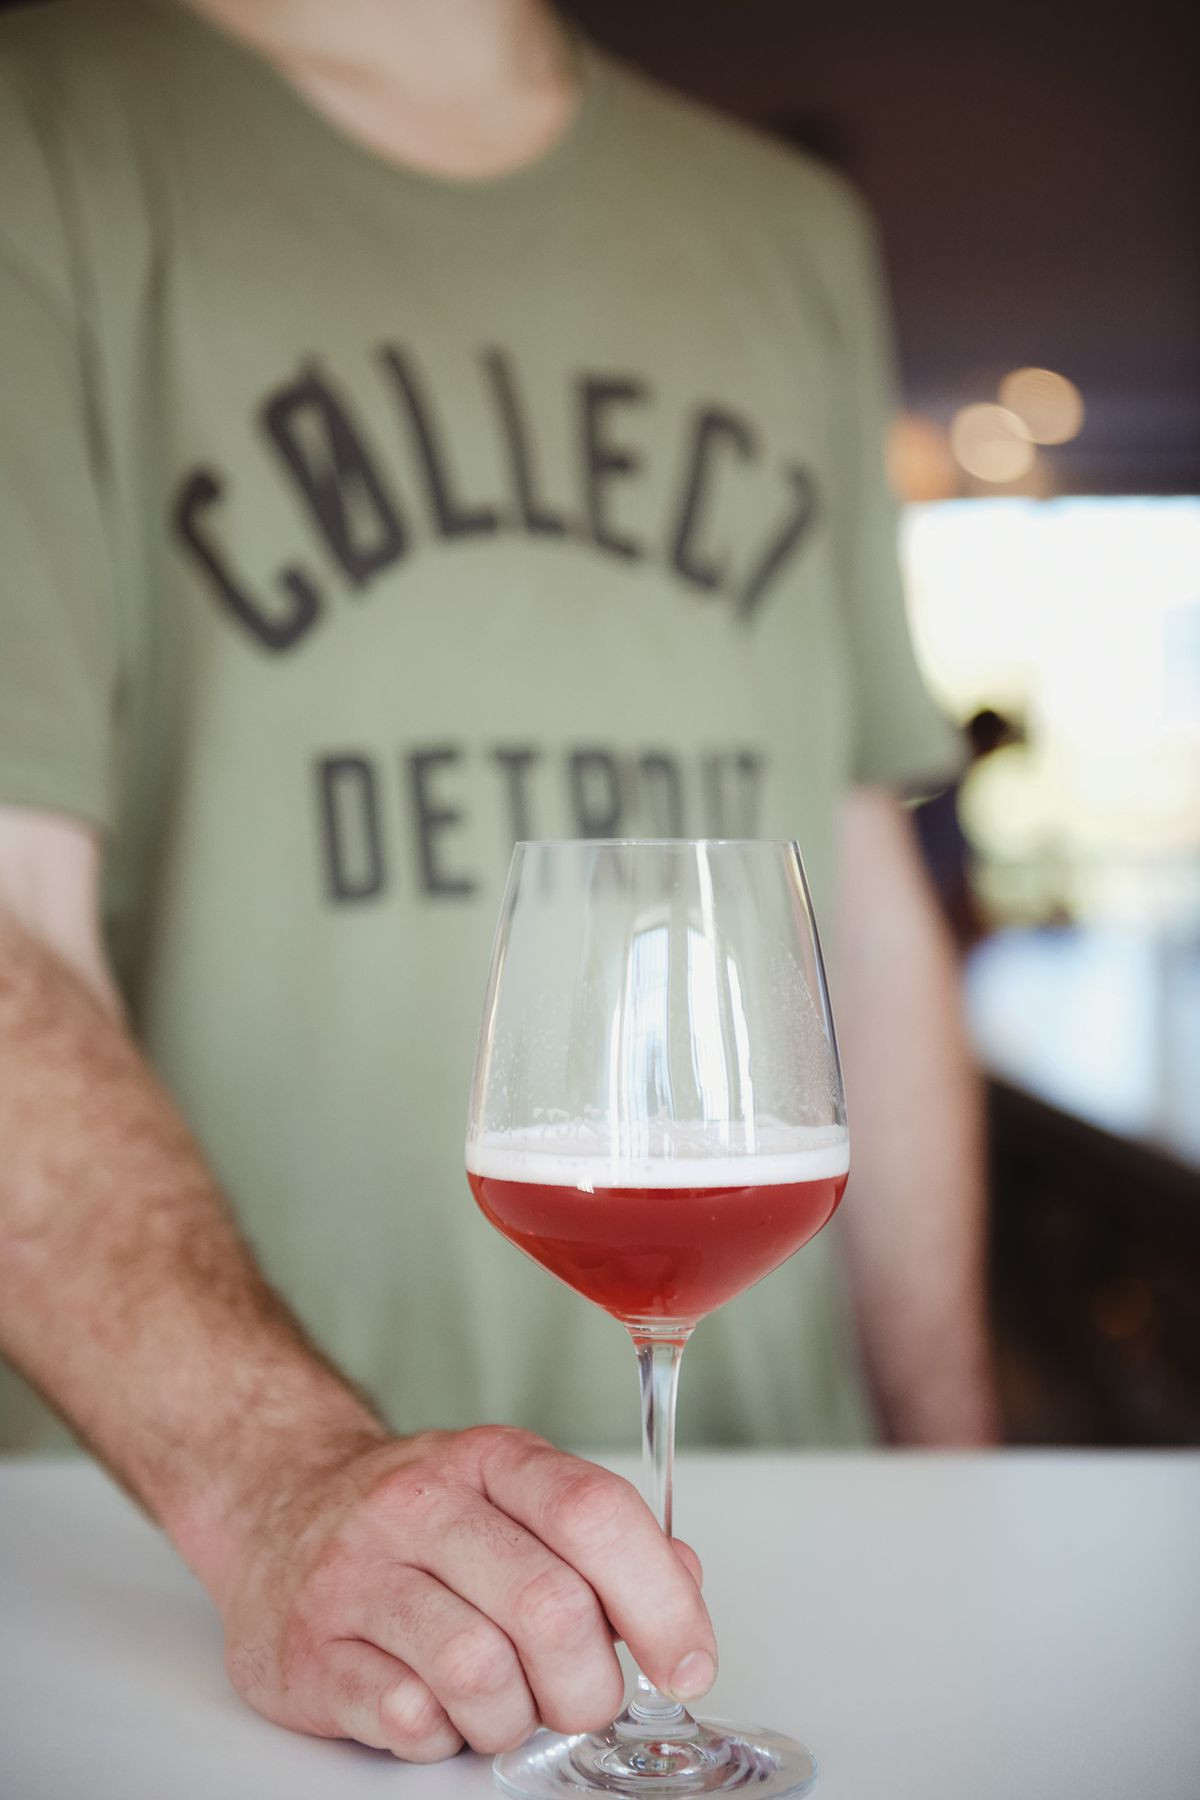 A man's white hand pushes a stemmed glass filled with a red beer toward the camera.